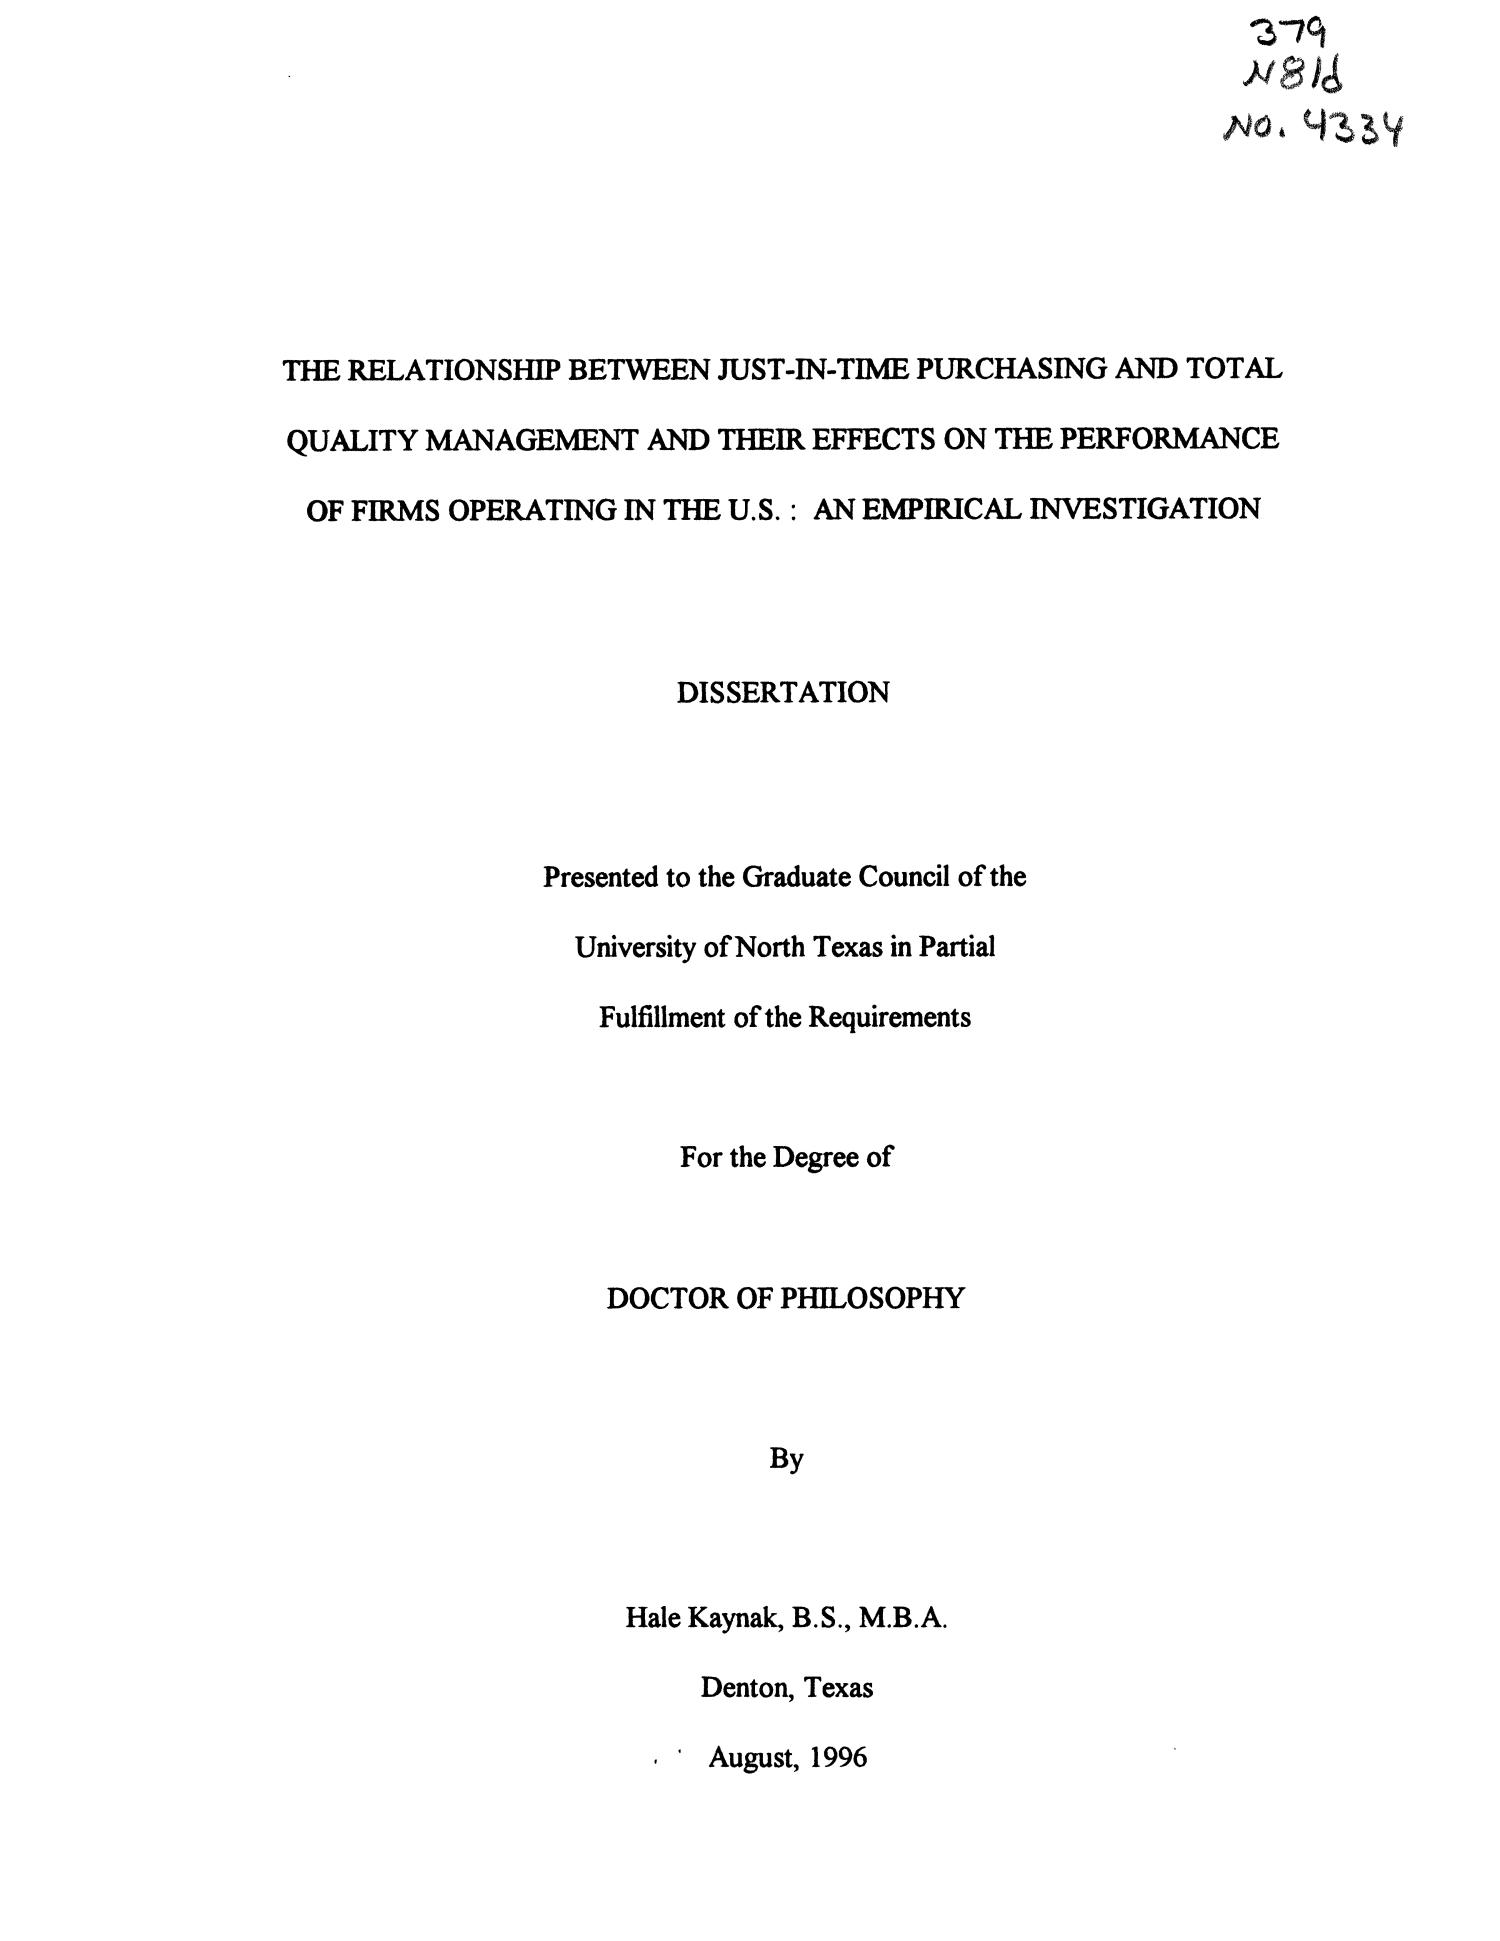 Phd thesis on total quality management